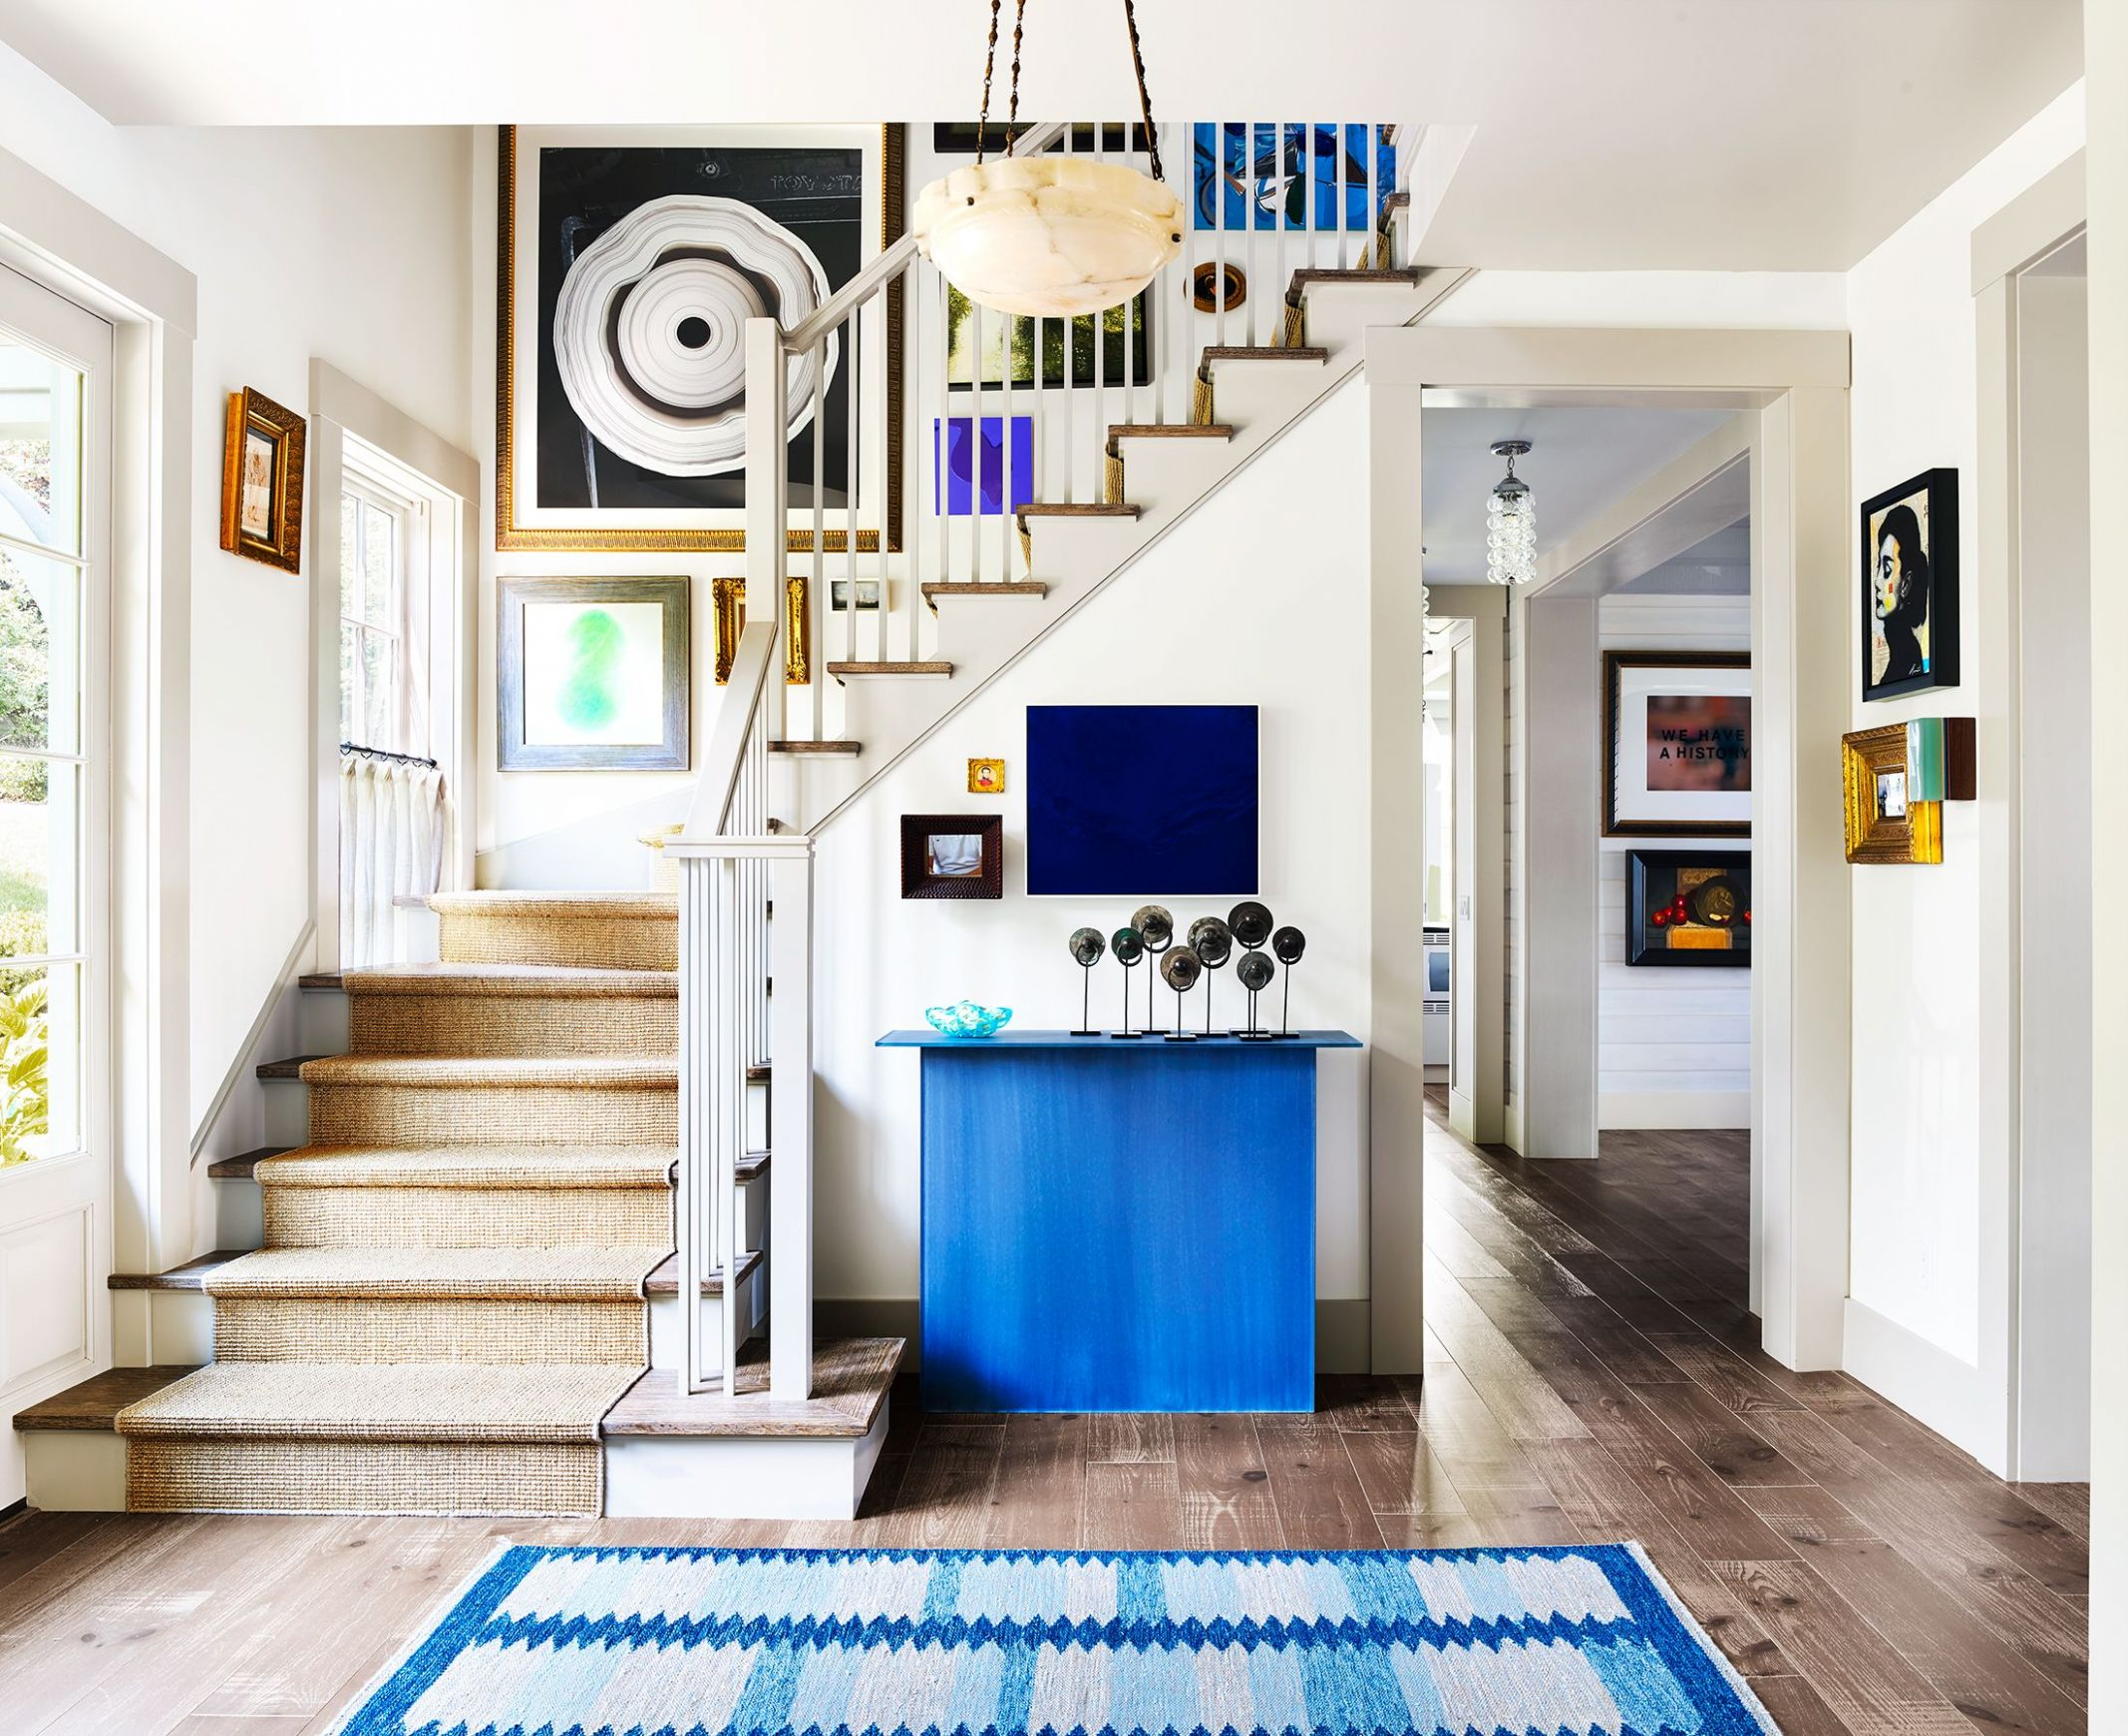 10 Best Wall Art Ideas For Every Room - Cool Wall Decor And Prints